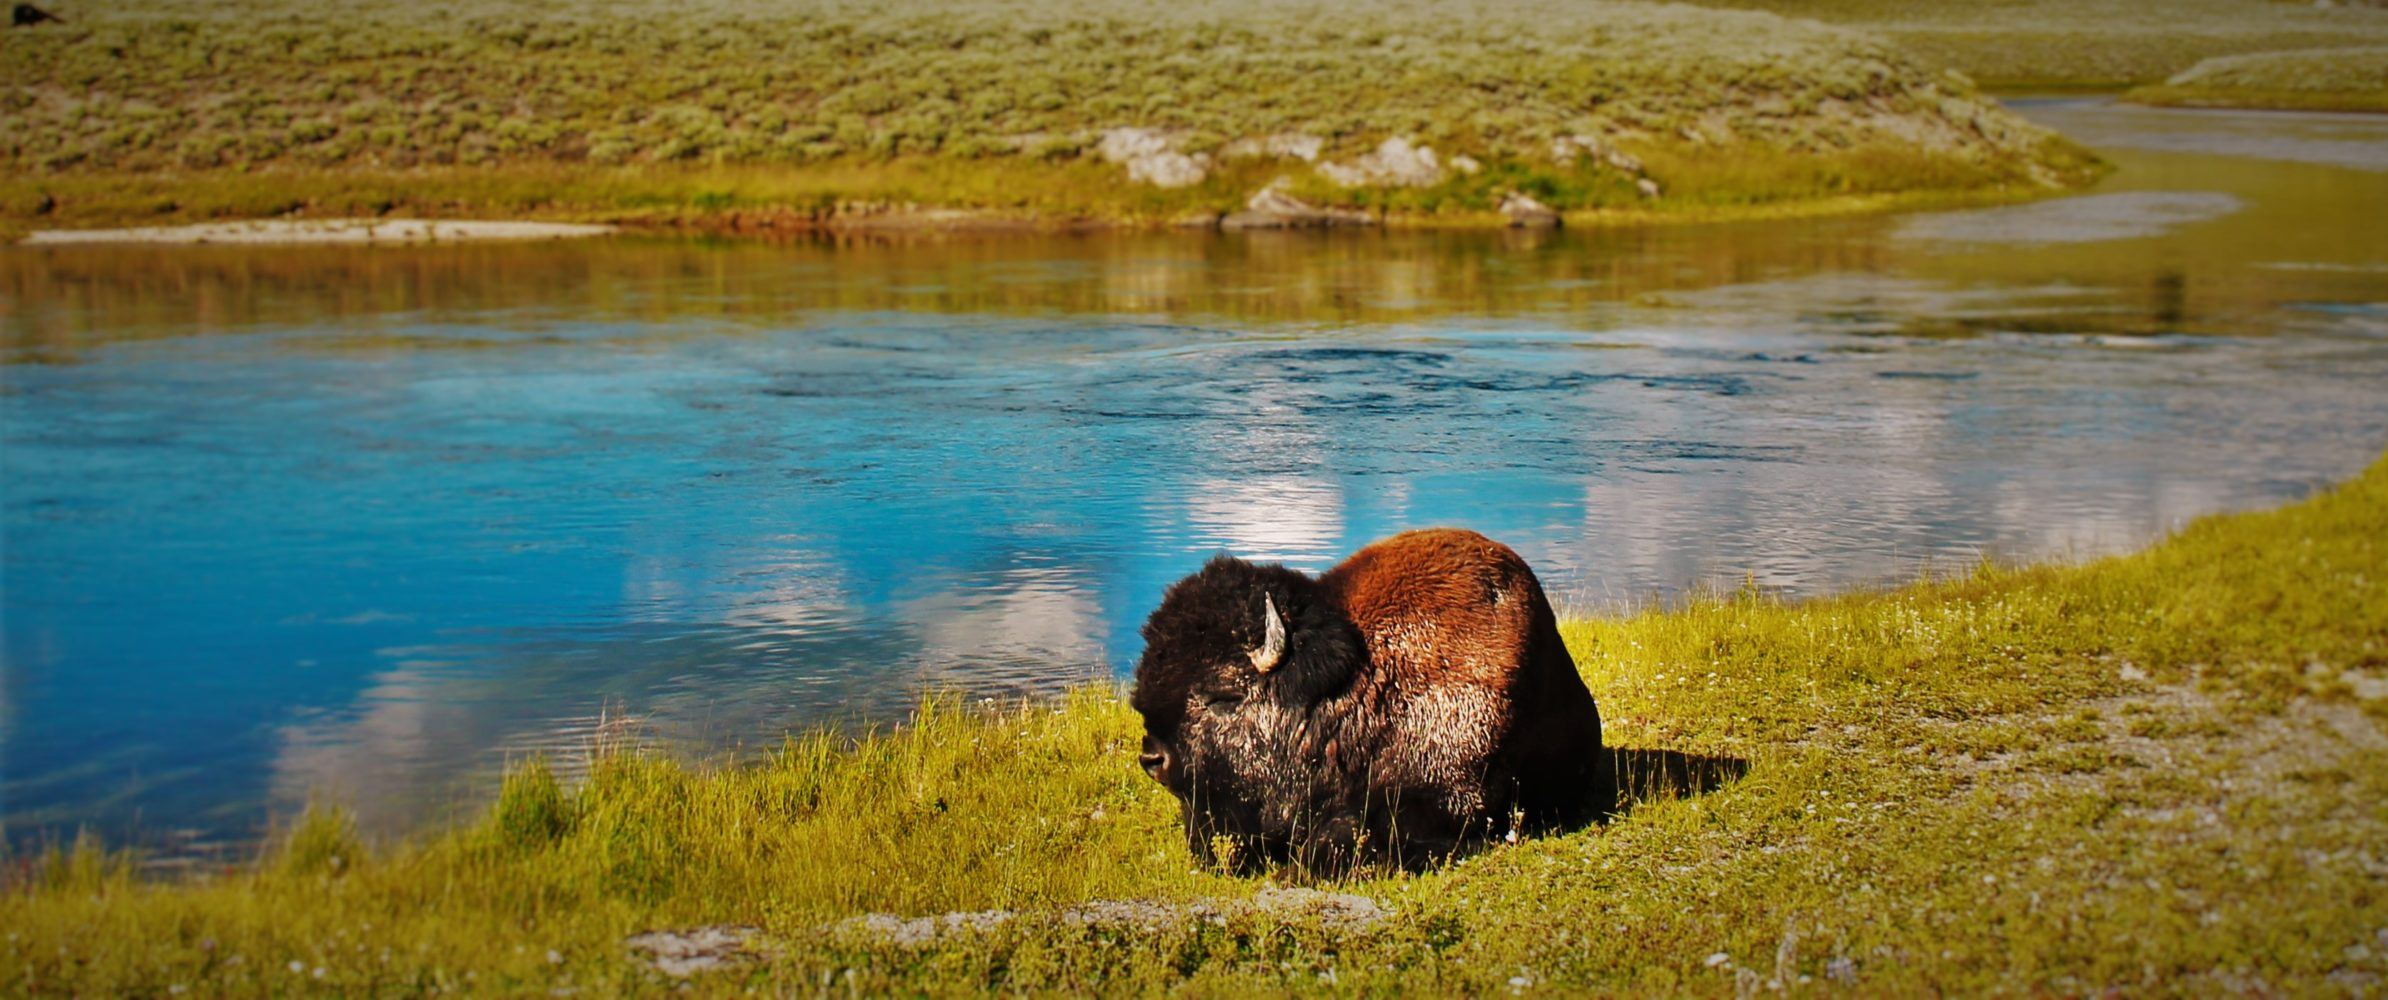 Bison Resting by Yellowstone River 1 header